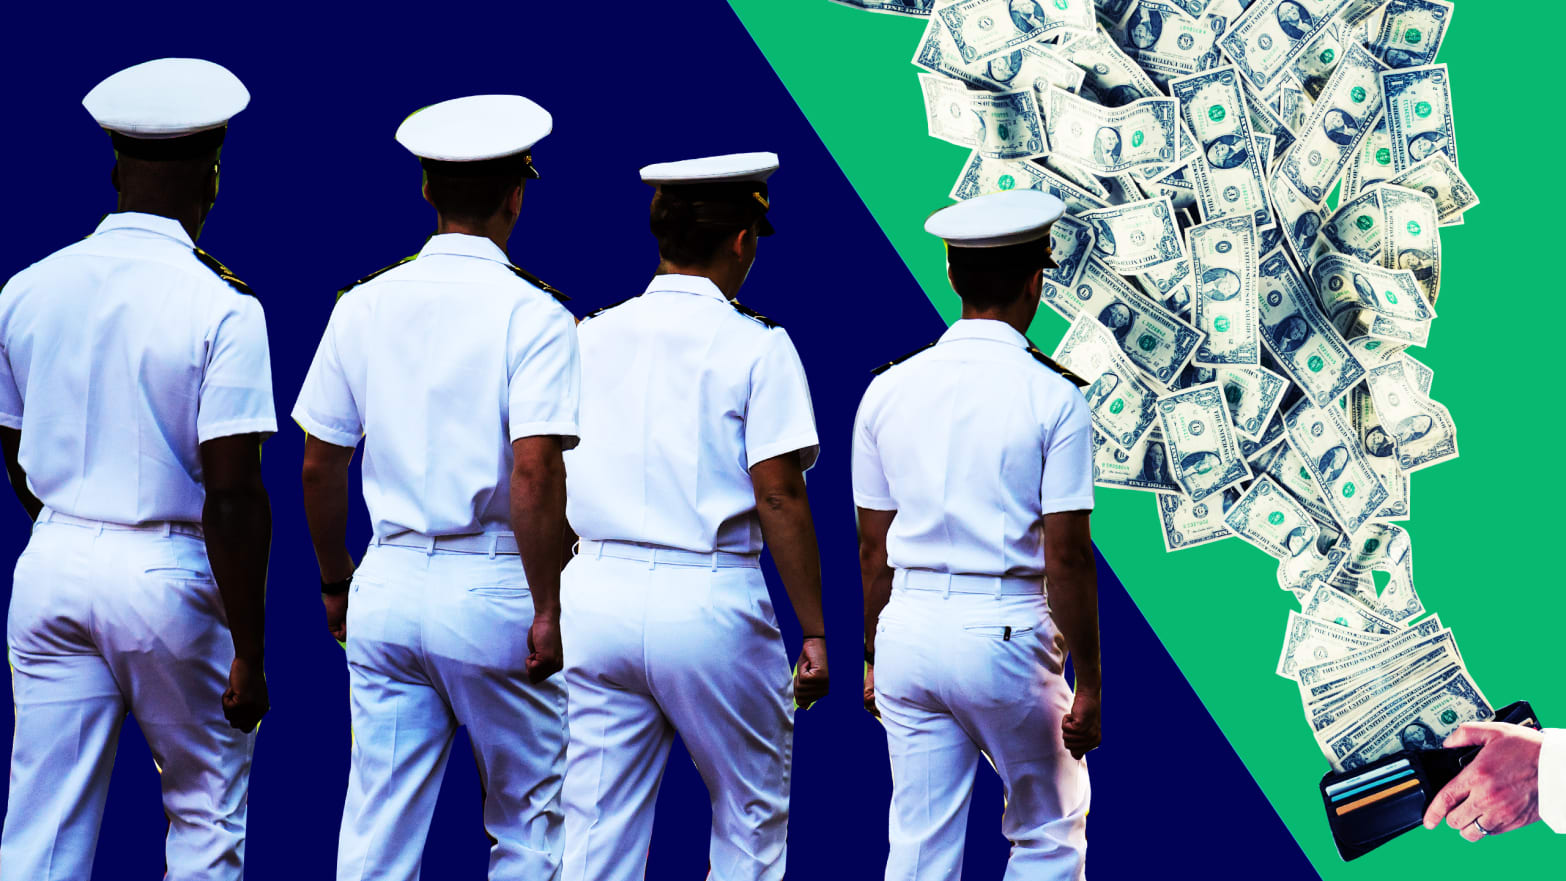 41e984a225 U.S. Navy Workers Are Sleeping on the Job—on Your Dime